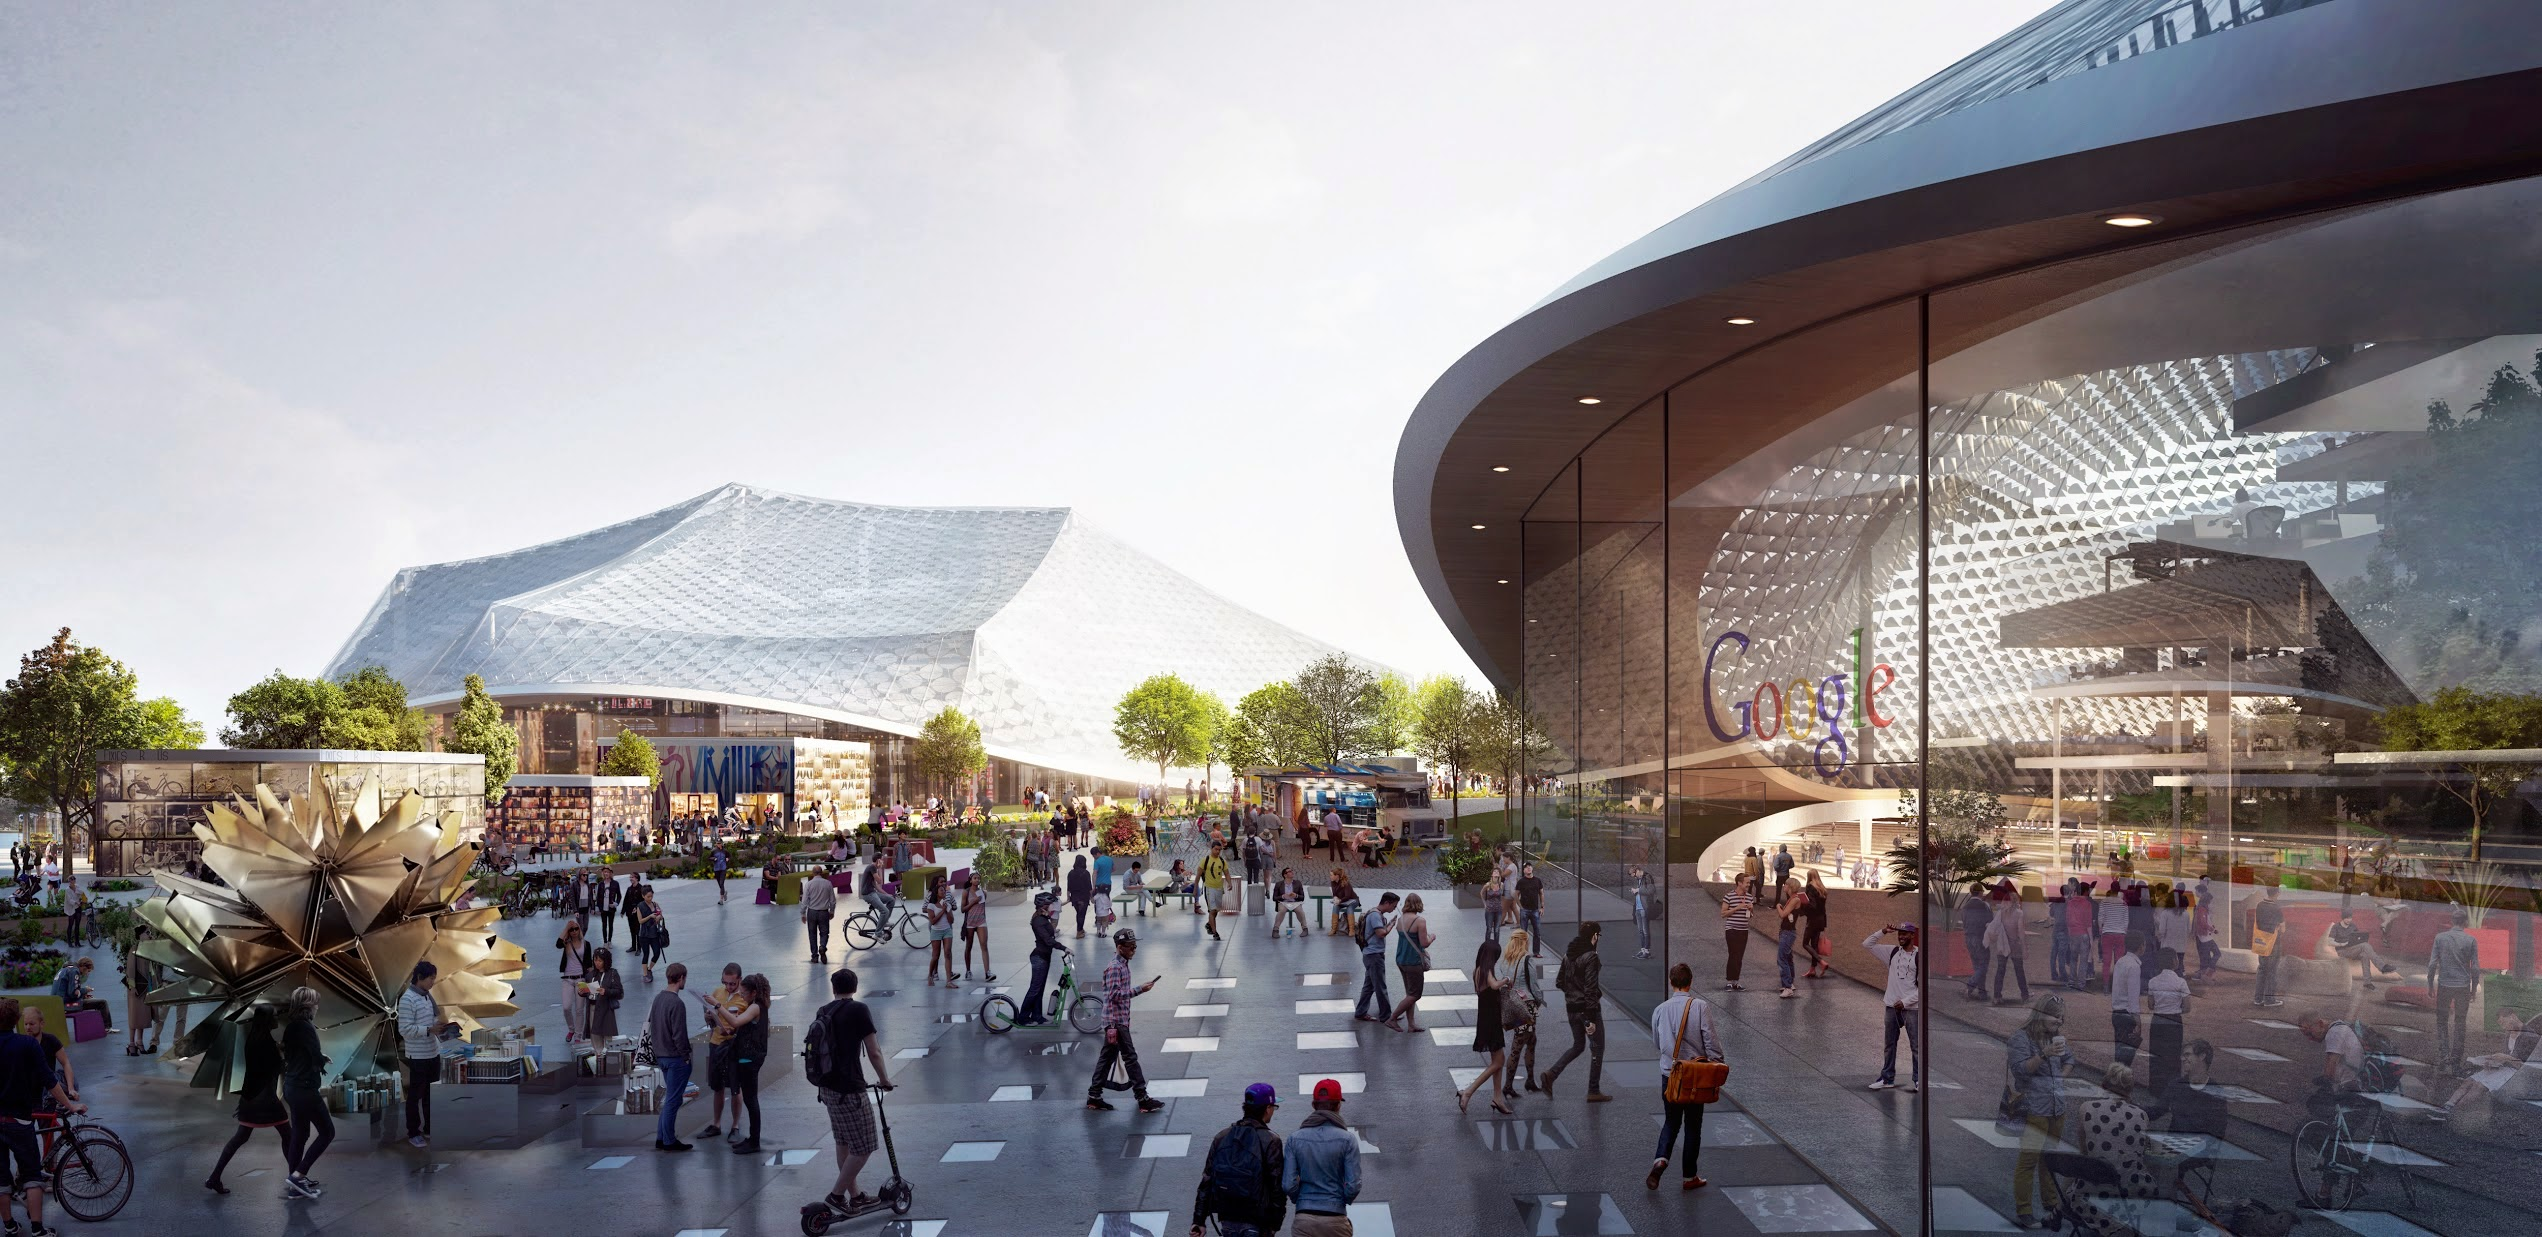 Google's new Global HQ design, Silicon valley